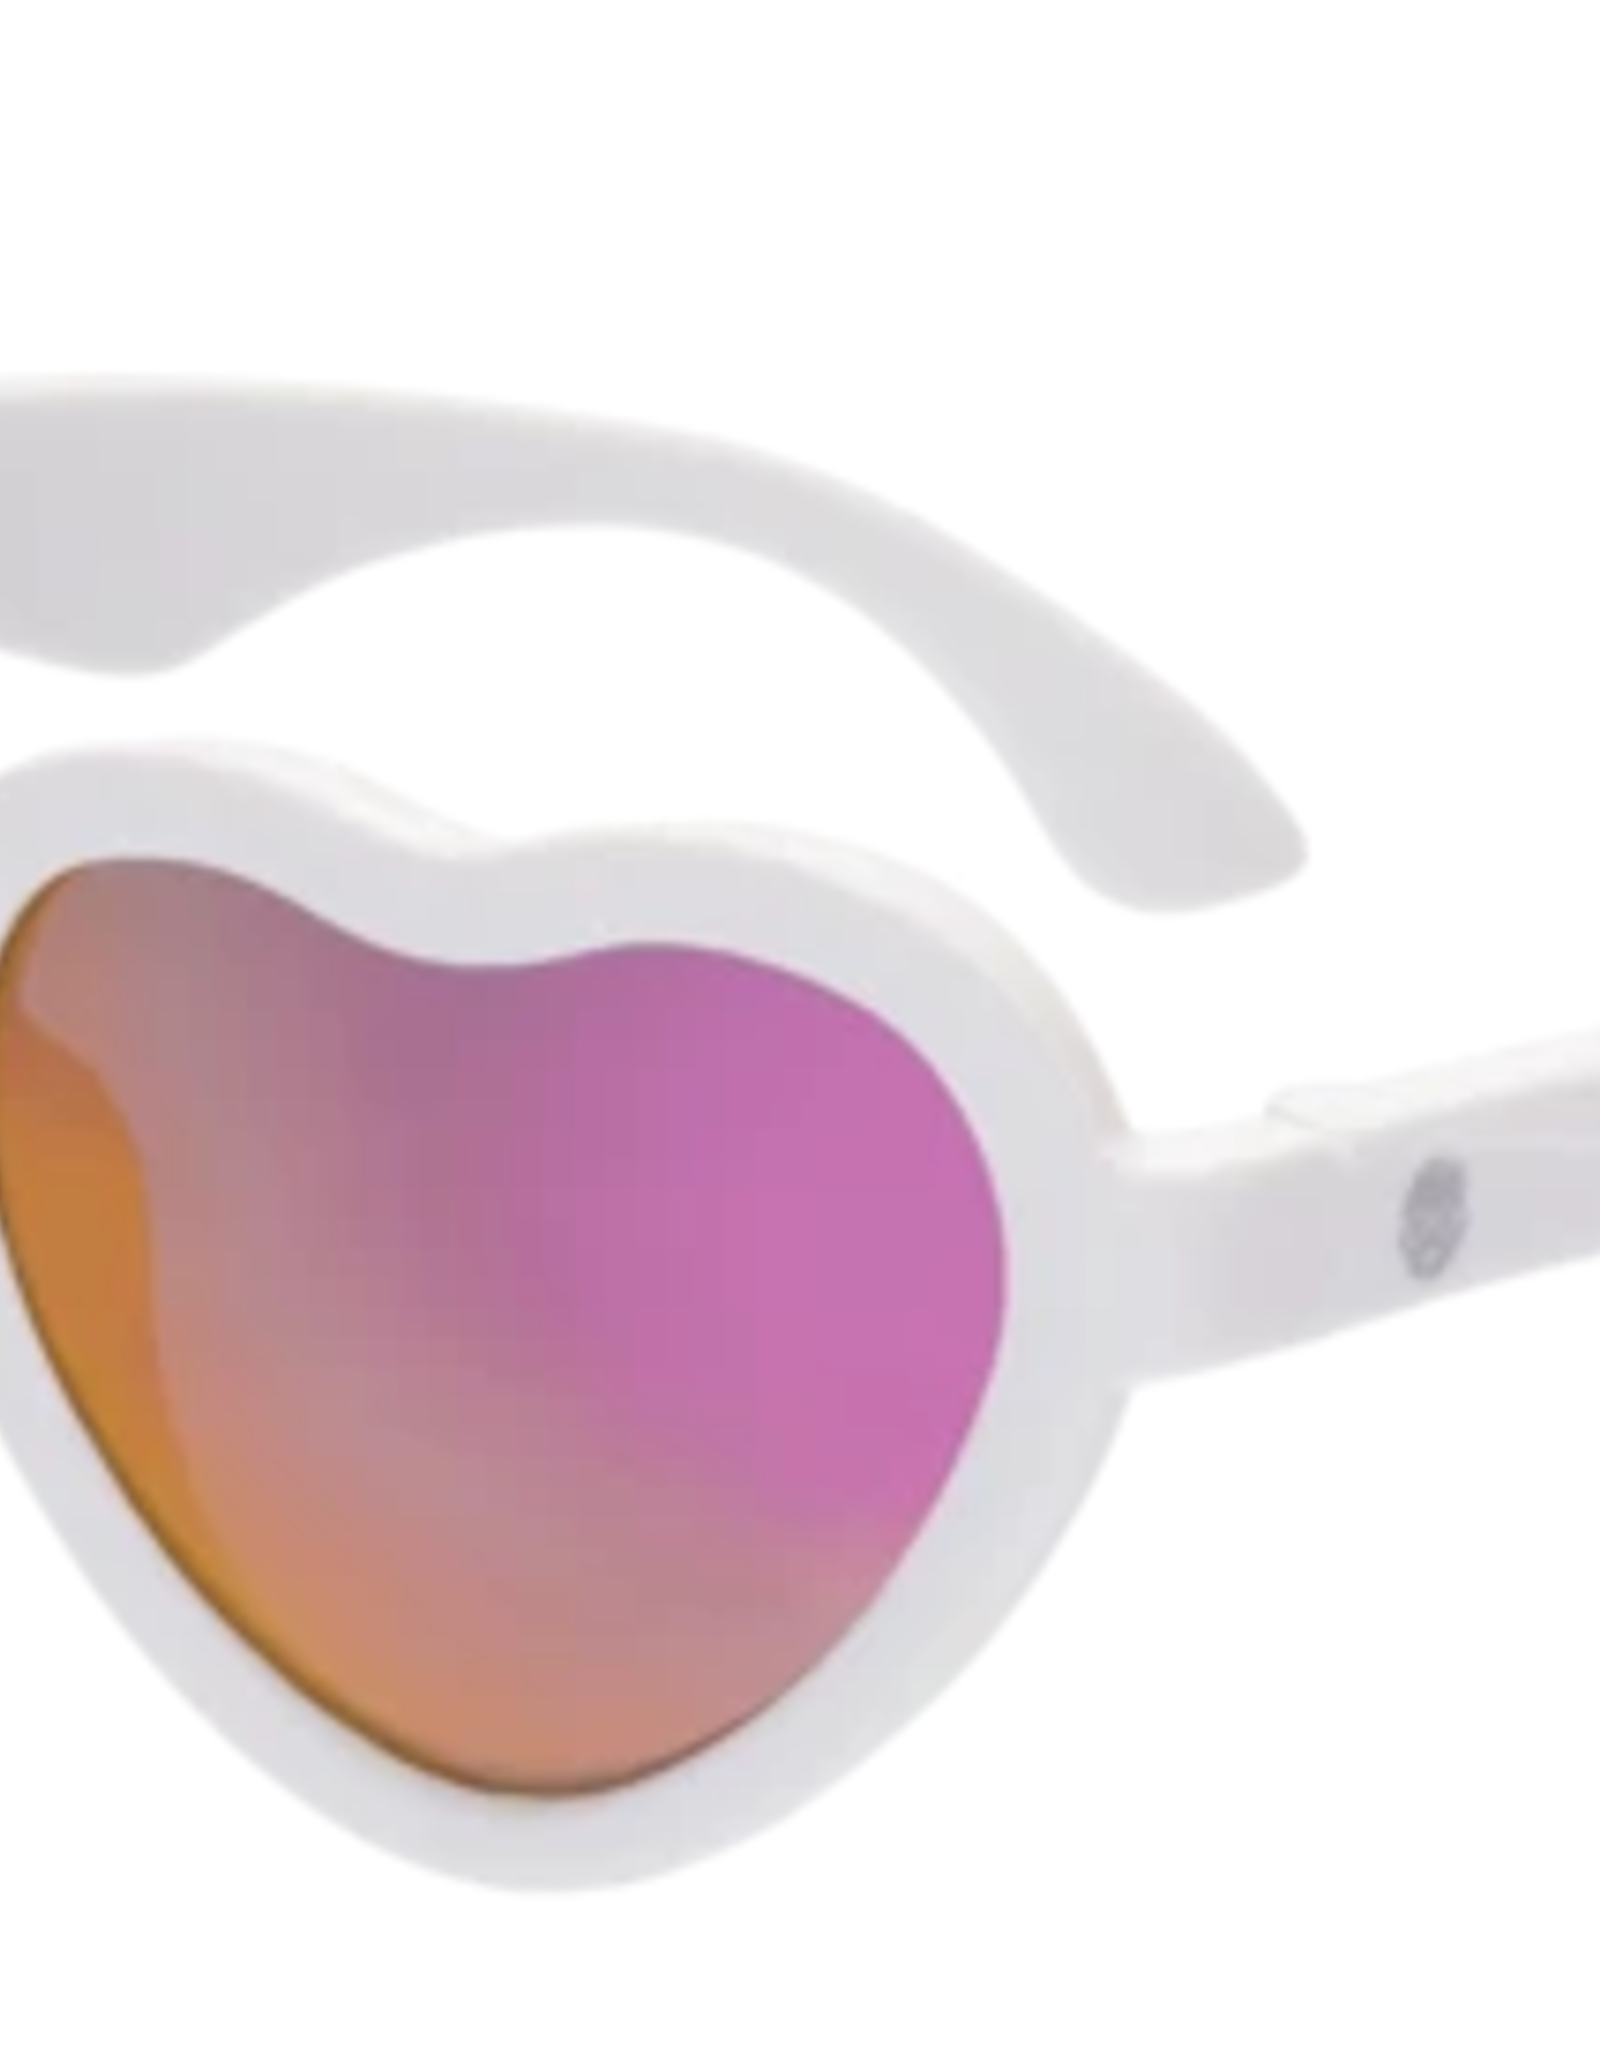 Babiators Babiators The Sweetheart Polarized